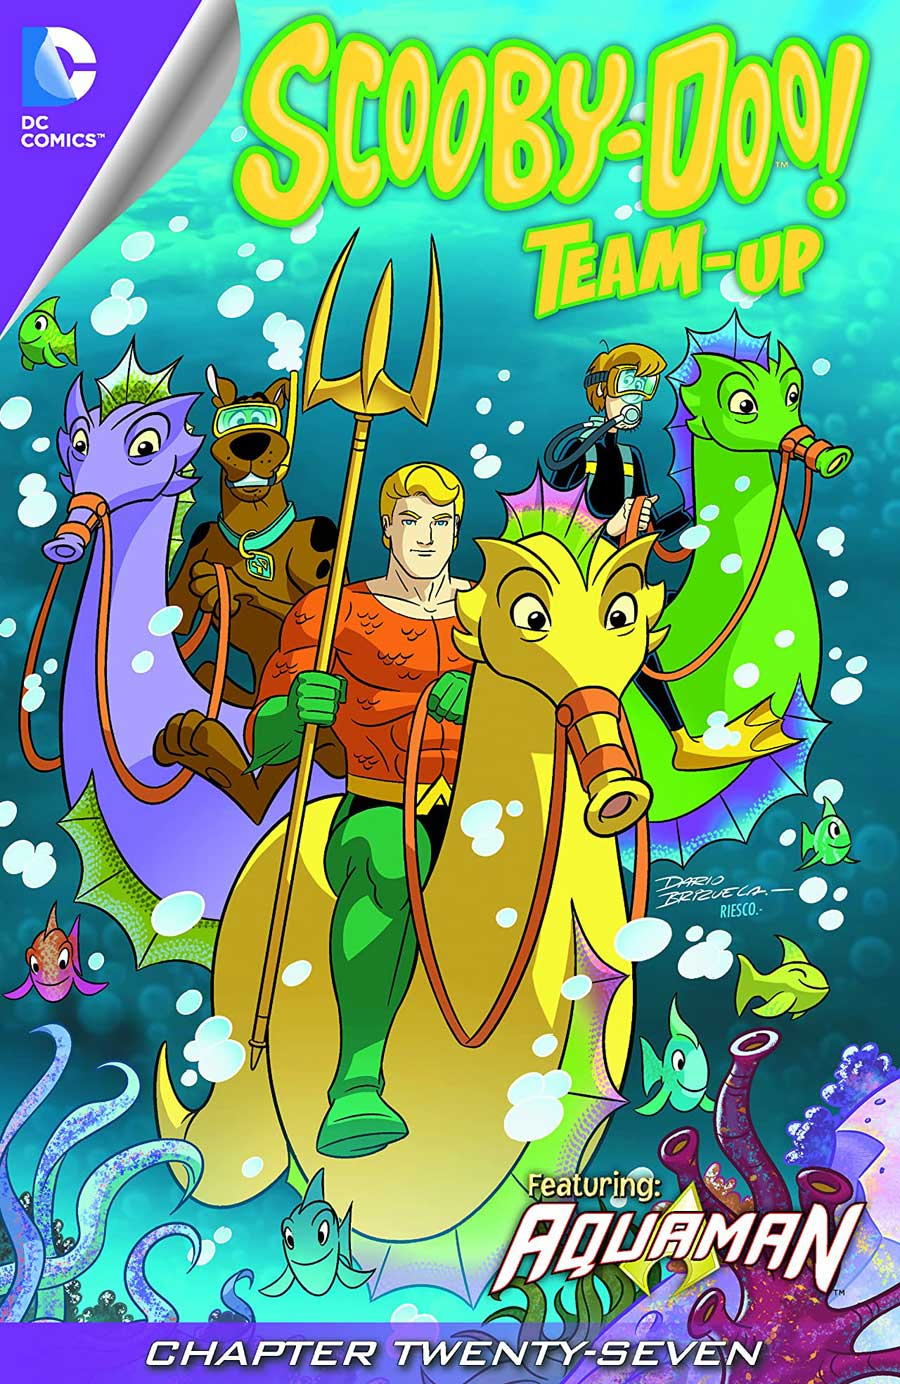 SCOOBY-DOO TEAM-UP #27-28 digitally -- #14 hardcopy